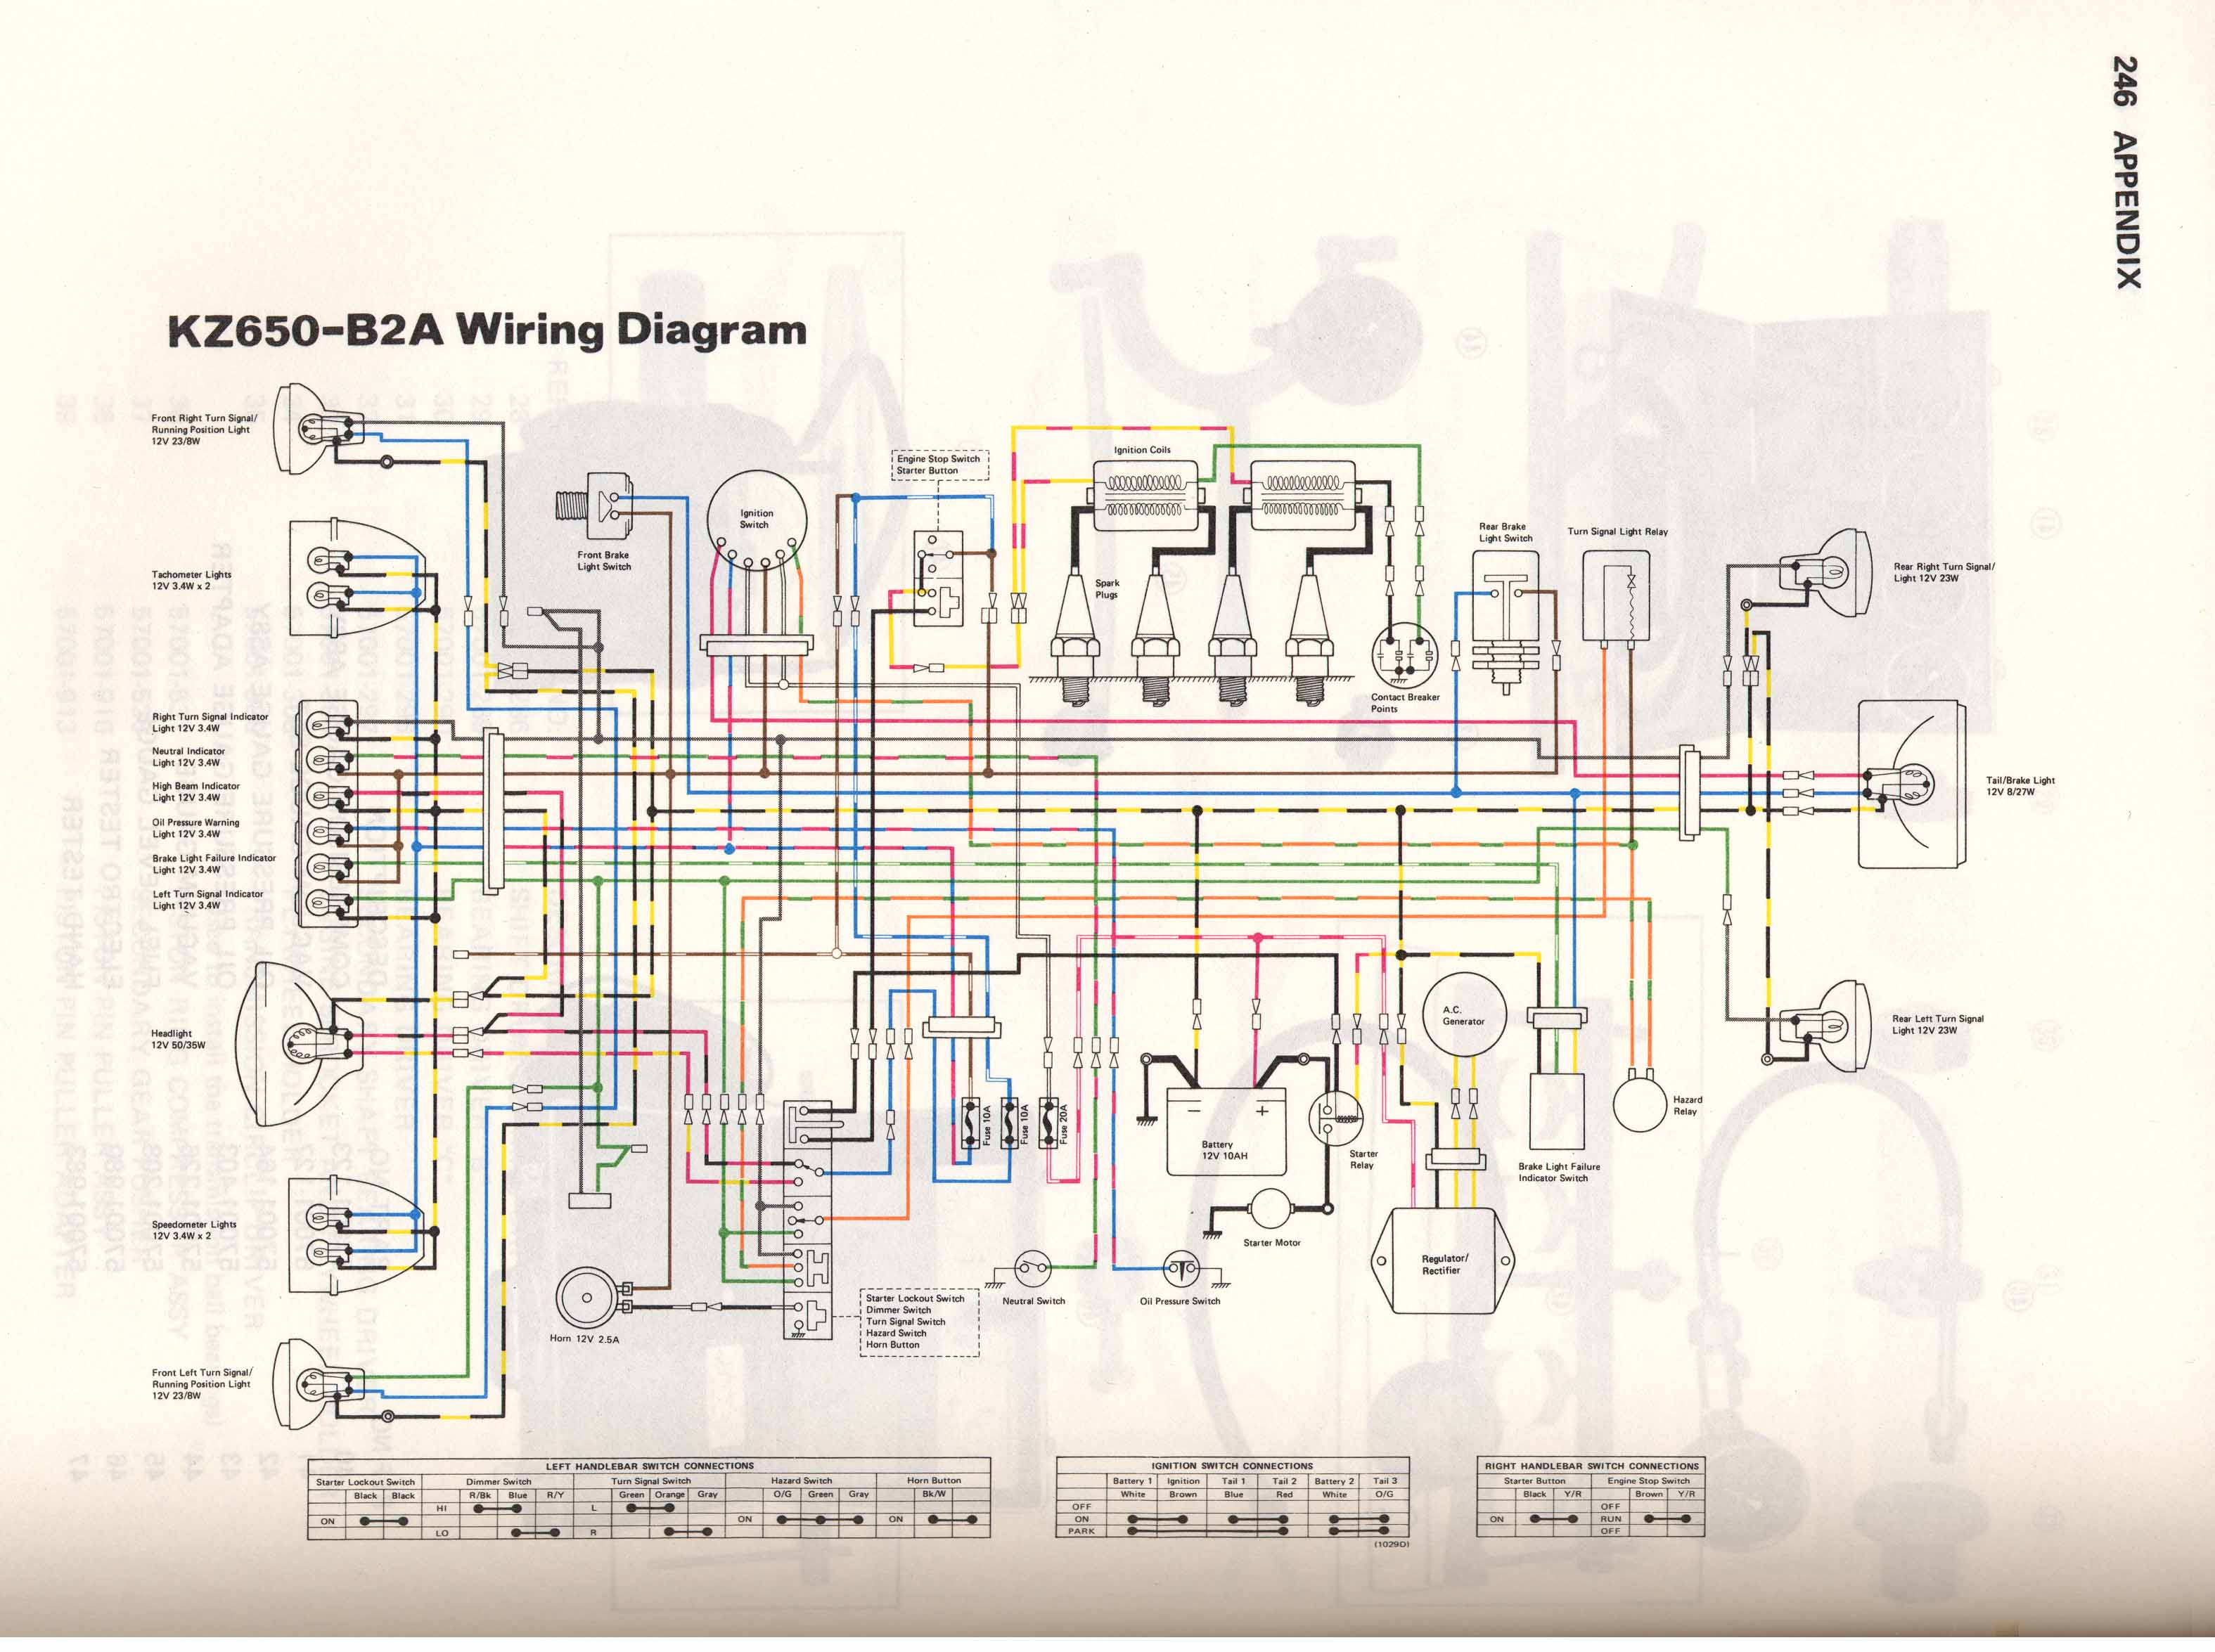 80 kz650 wiring diagram b2a kz650 wiring diagram kz650.info - wiring diagrams #10